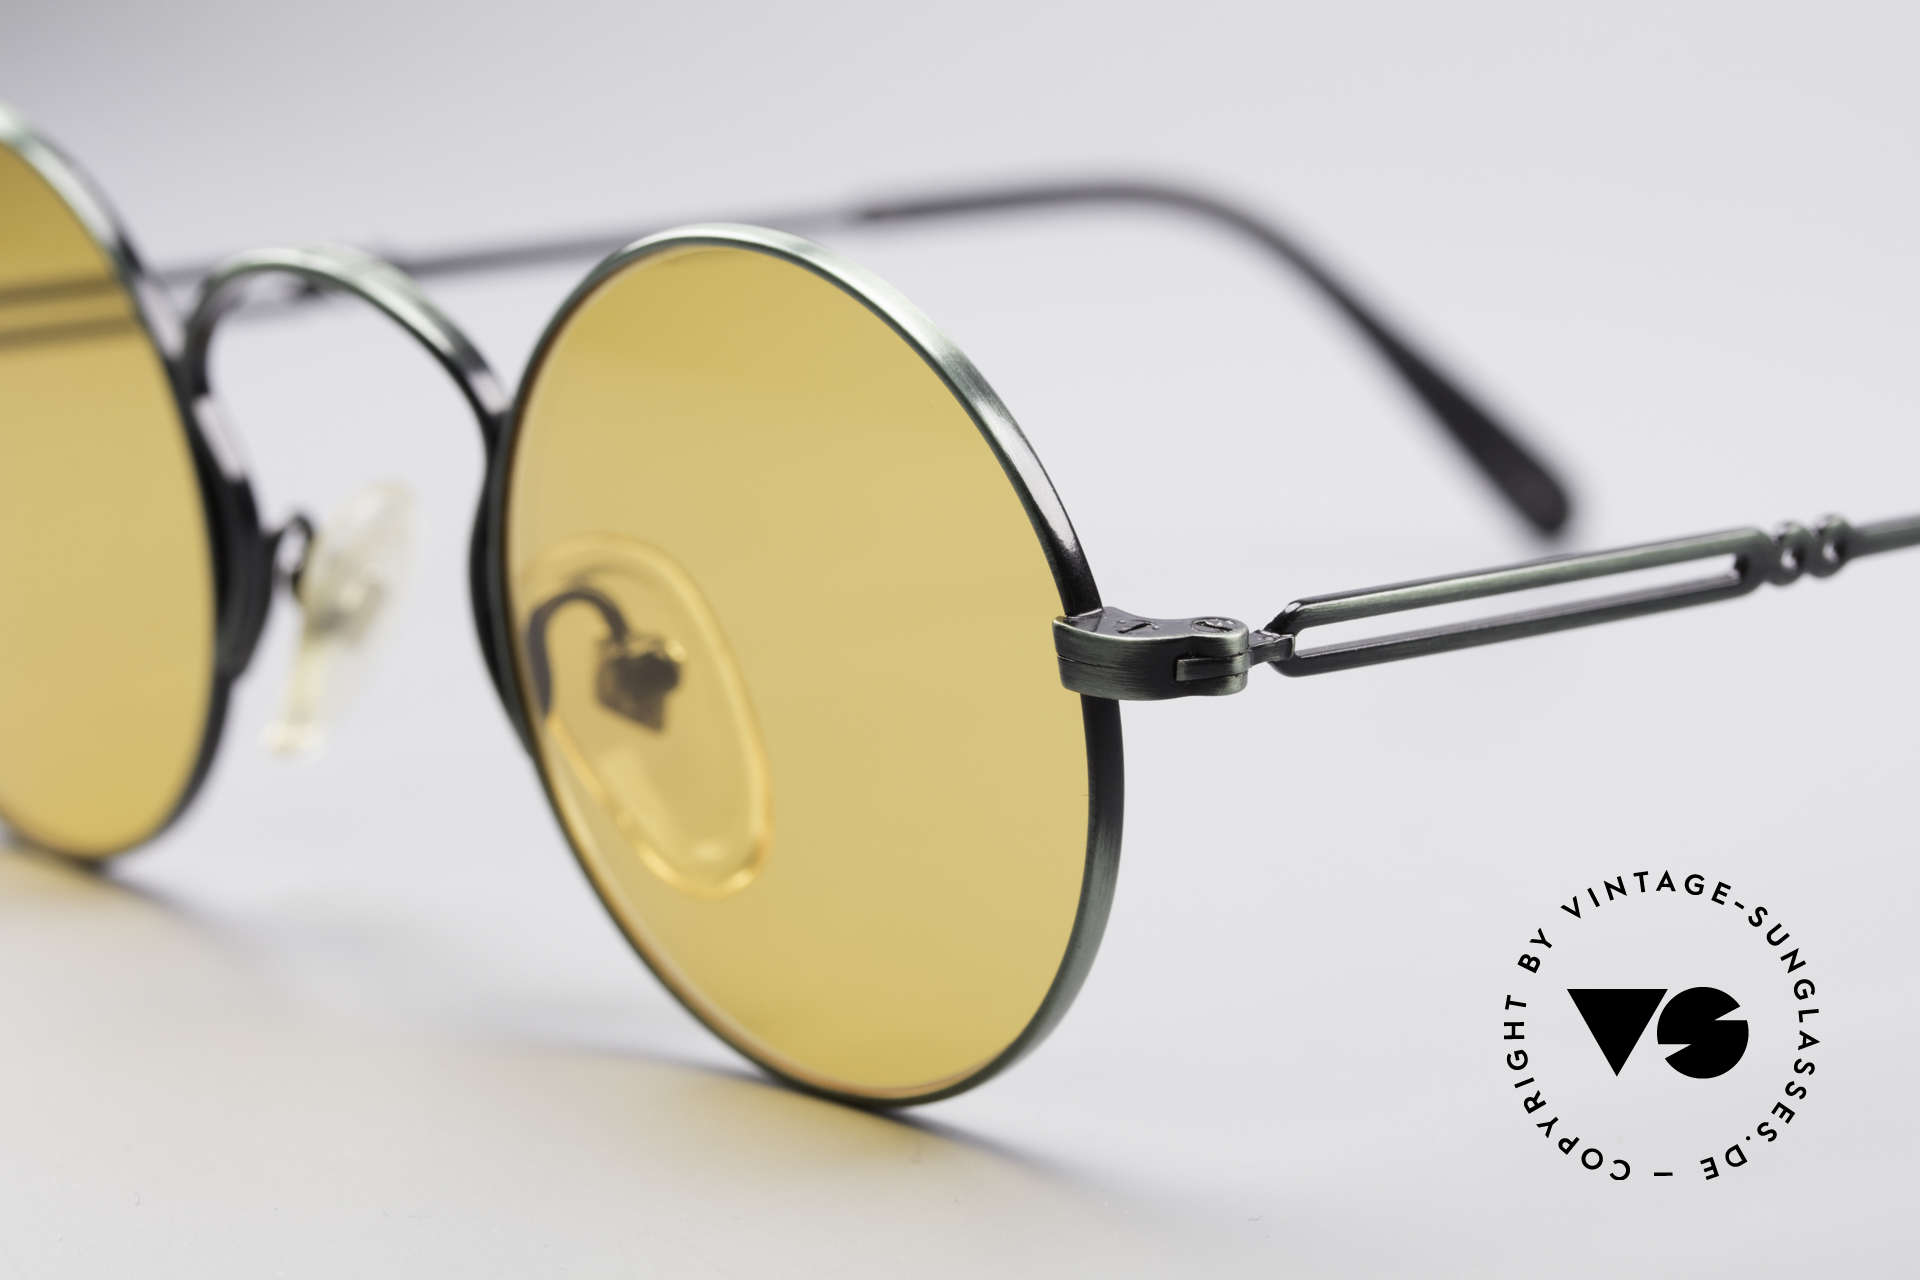 Jean Paul Gaultier 55-0172 Round Vintage Glasses JPG, new old stock (like all our rare vintage sunglasses), Made for Men and Women